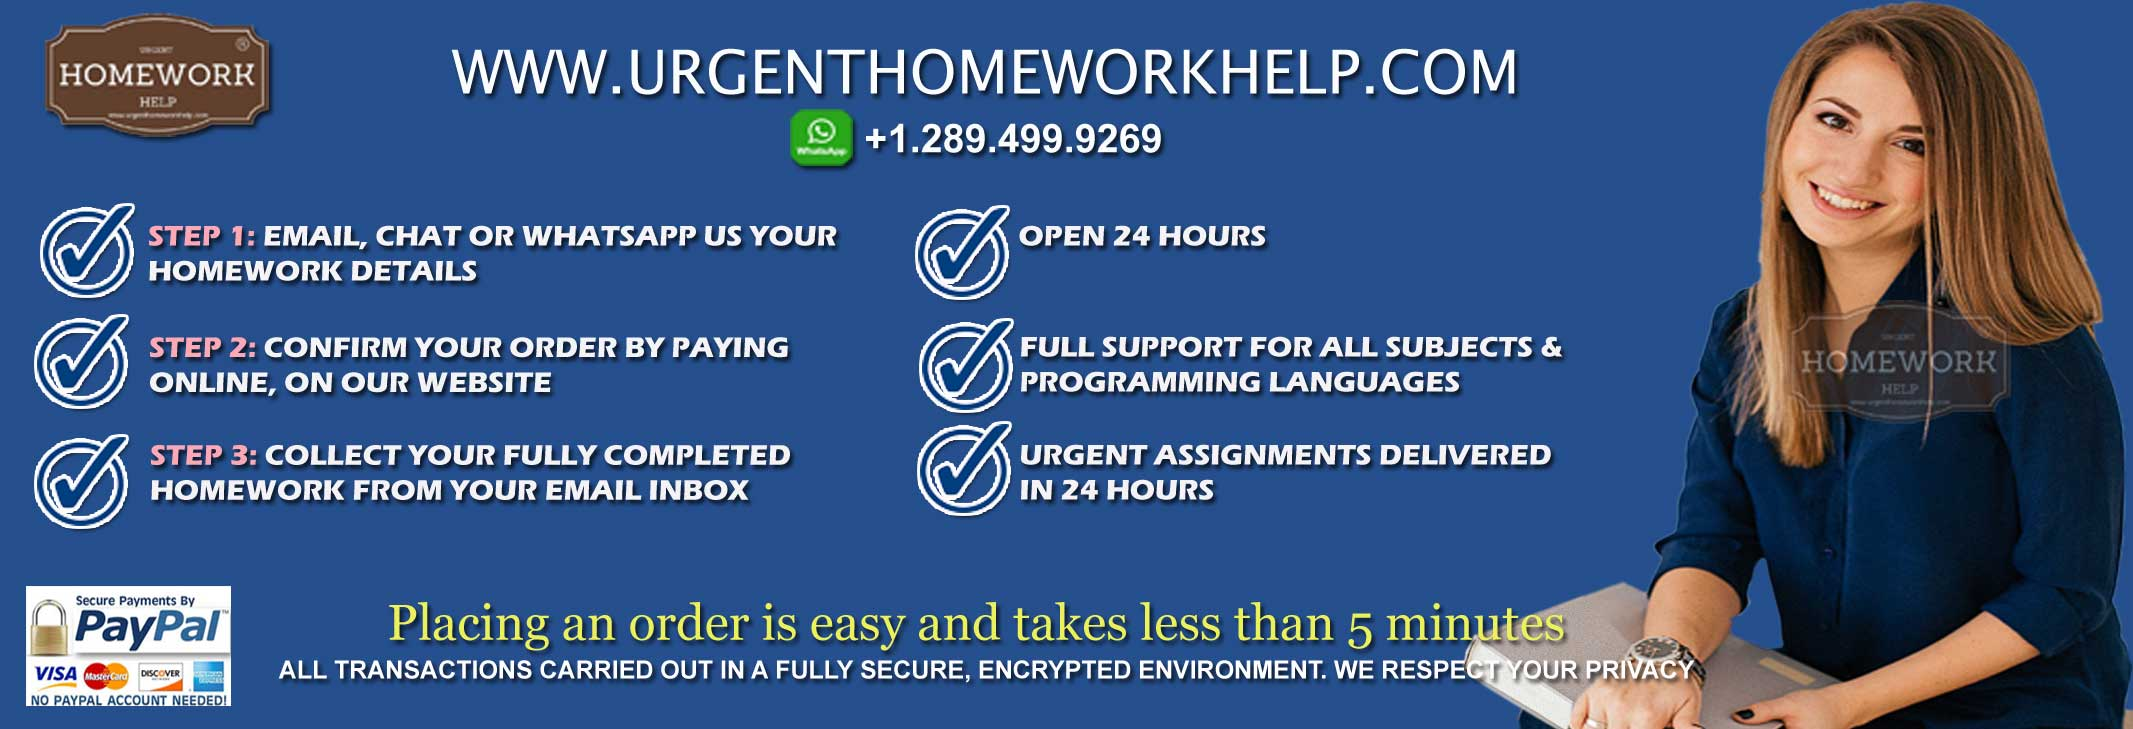 conemporary issues legal studies homework help